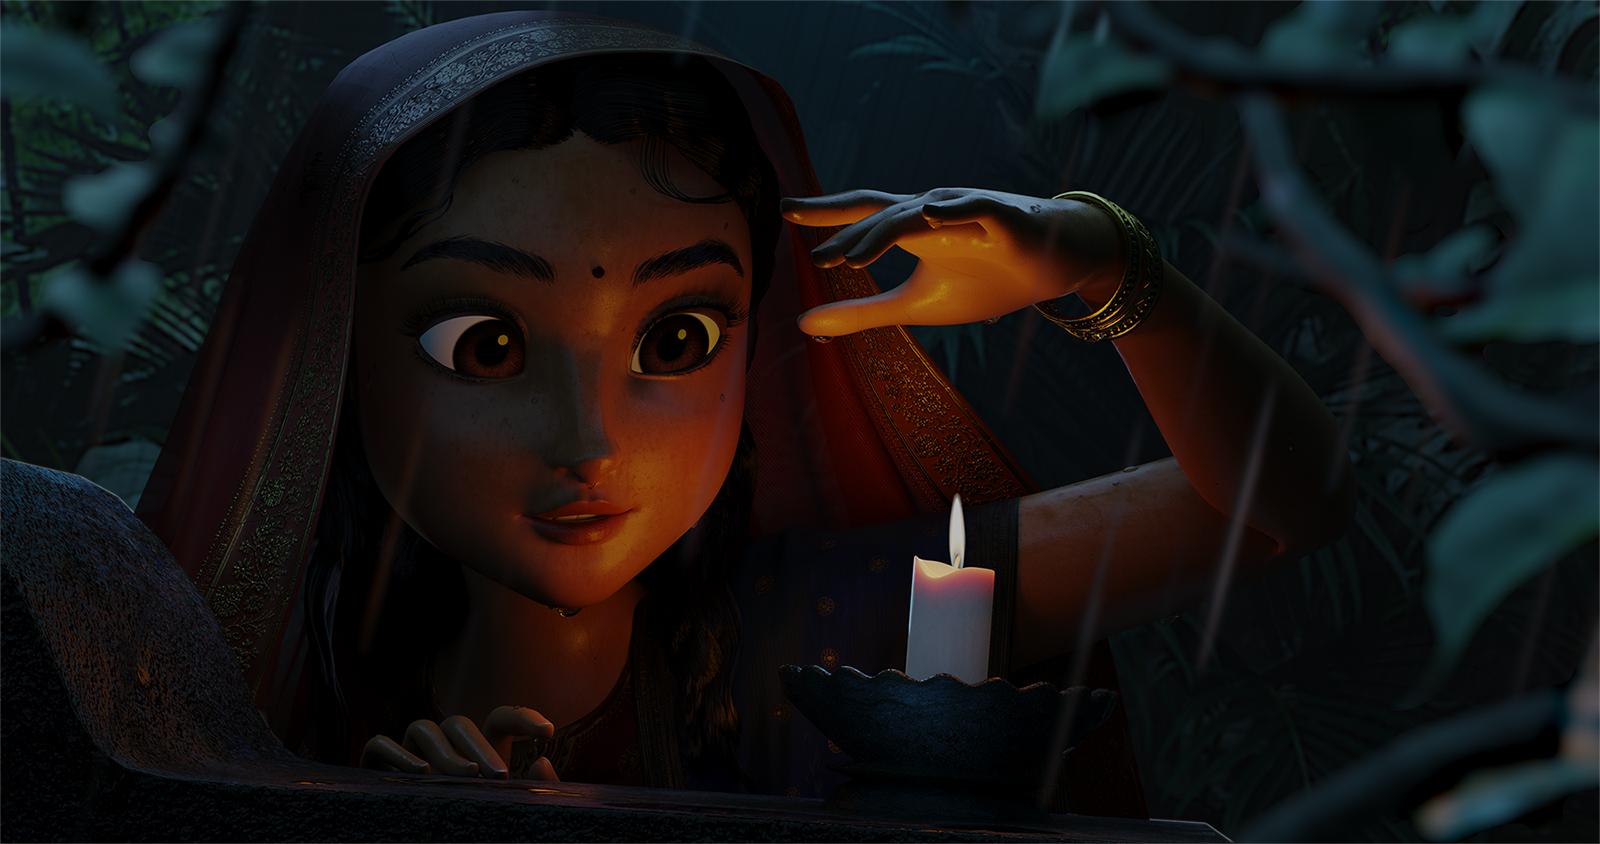 A rendering of an animated character looking at a lit candle.